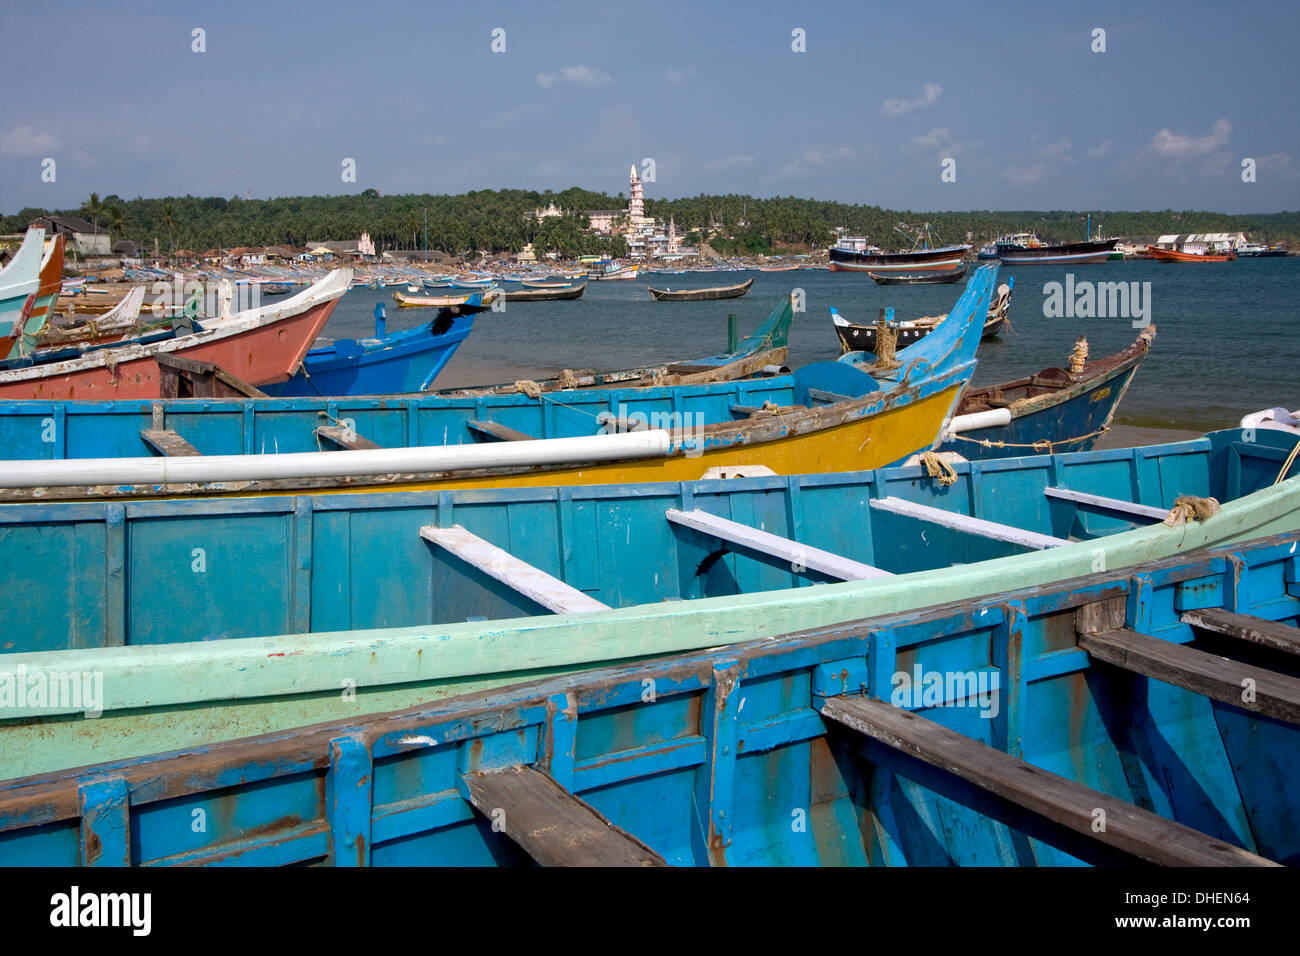 Fishing boats, Vizhinjam, Trivandrum, Kerala, India, Asia - Stock Image